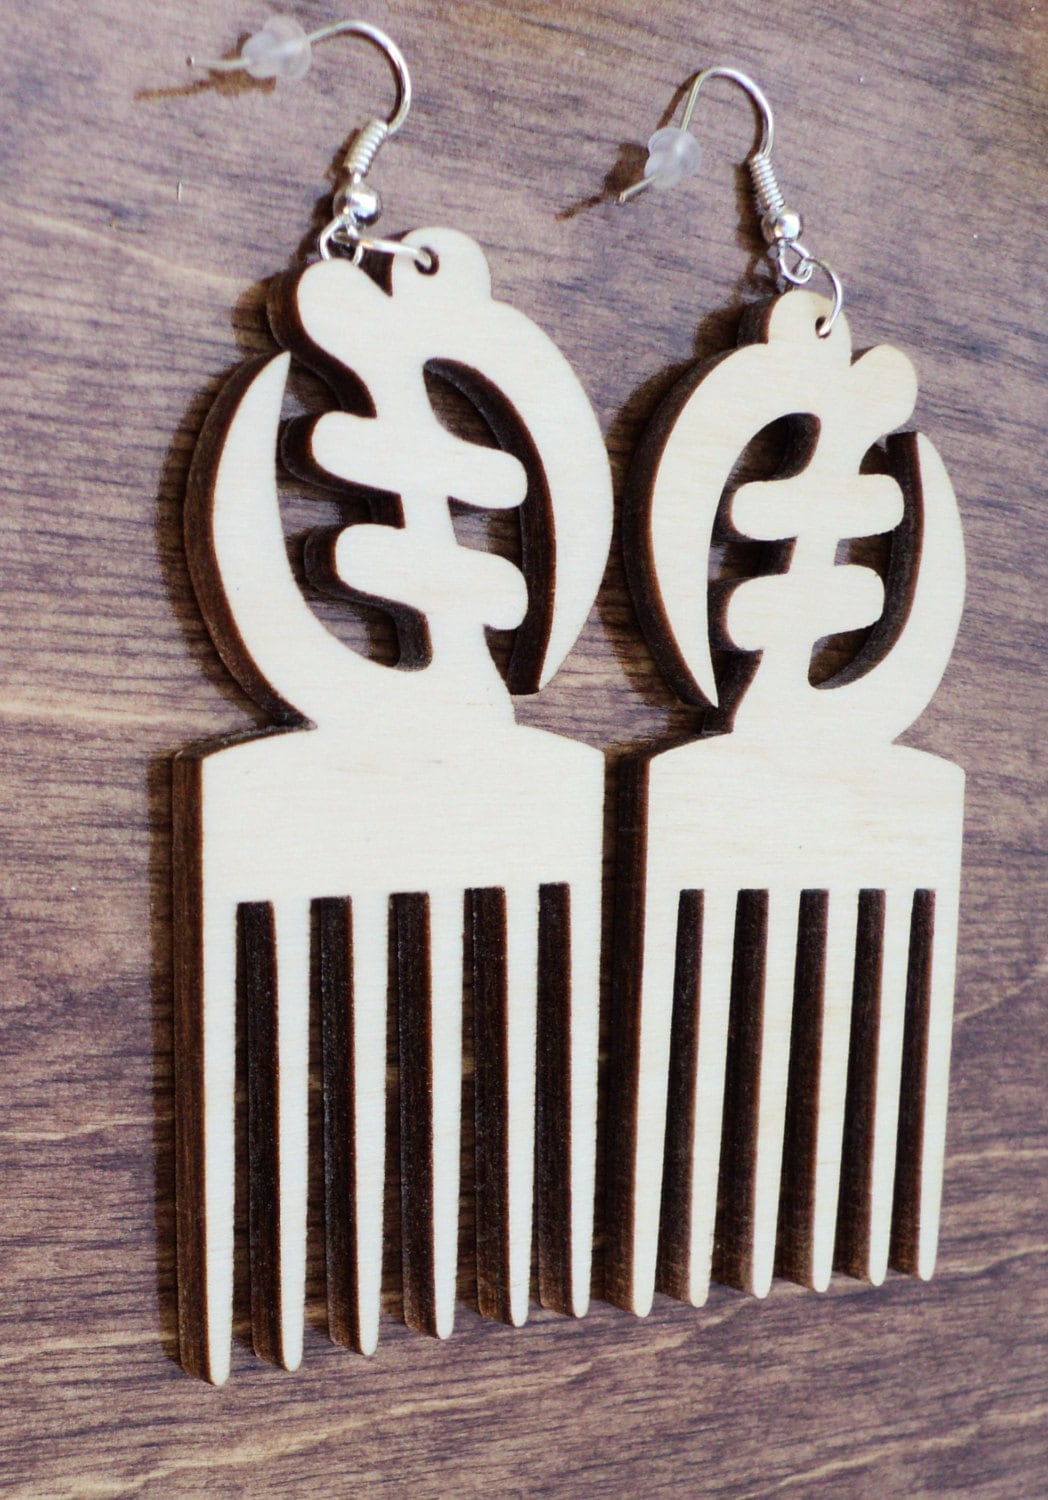 10 Pieces Wood Jewelry Wood Shapes DIY Unfinished Laser Cut Natural Wood Earrings Blanks Adinkra Gye Nyame Shape